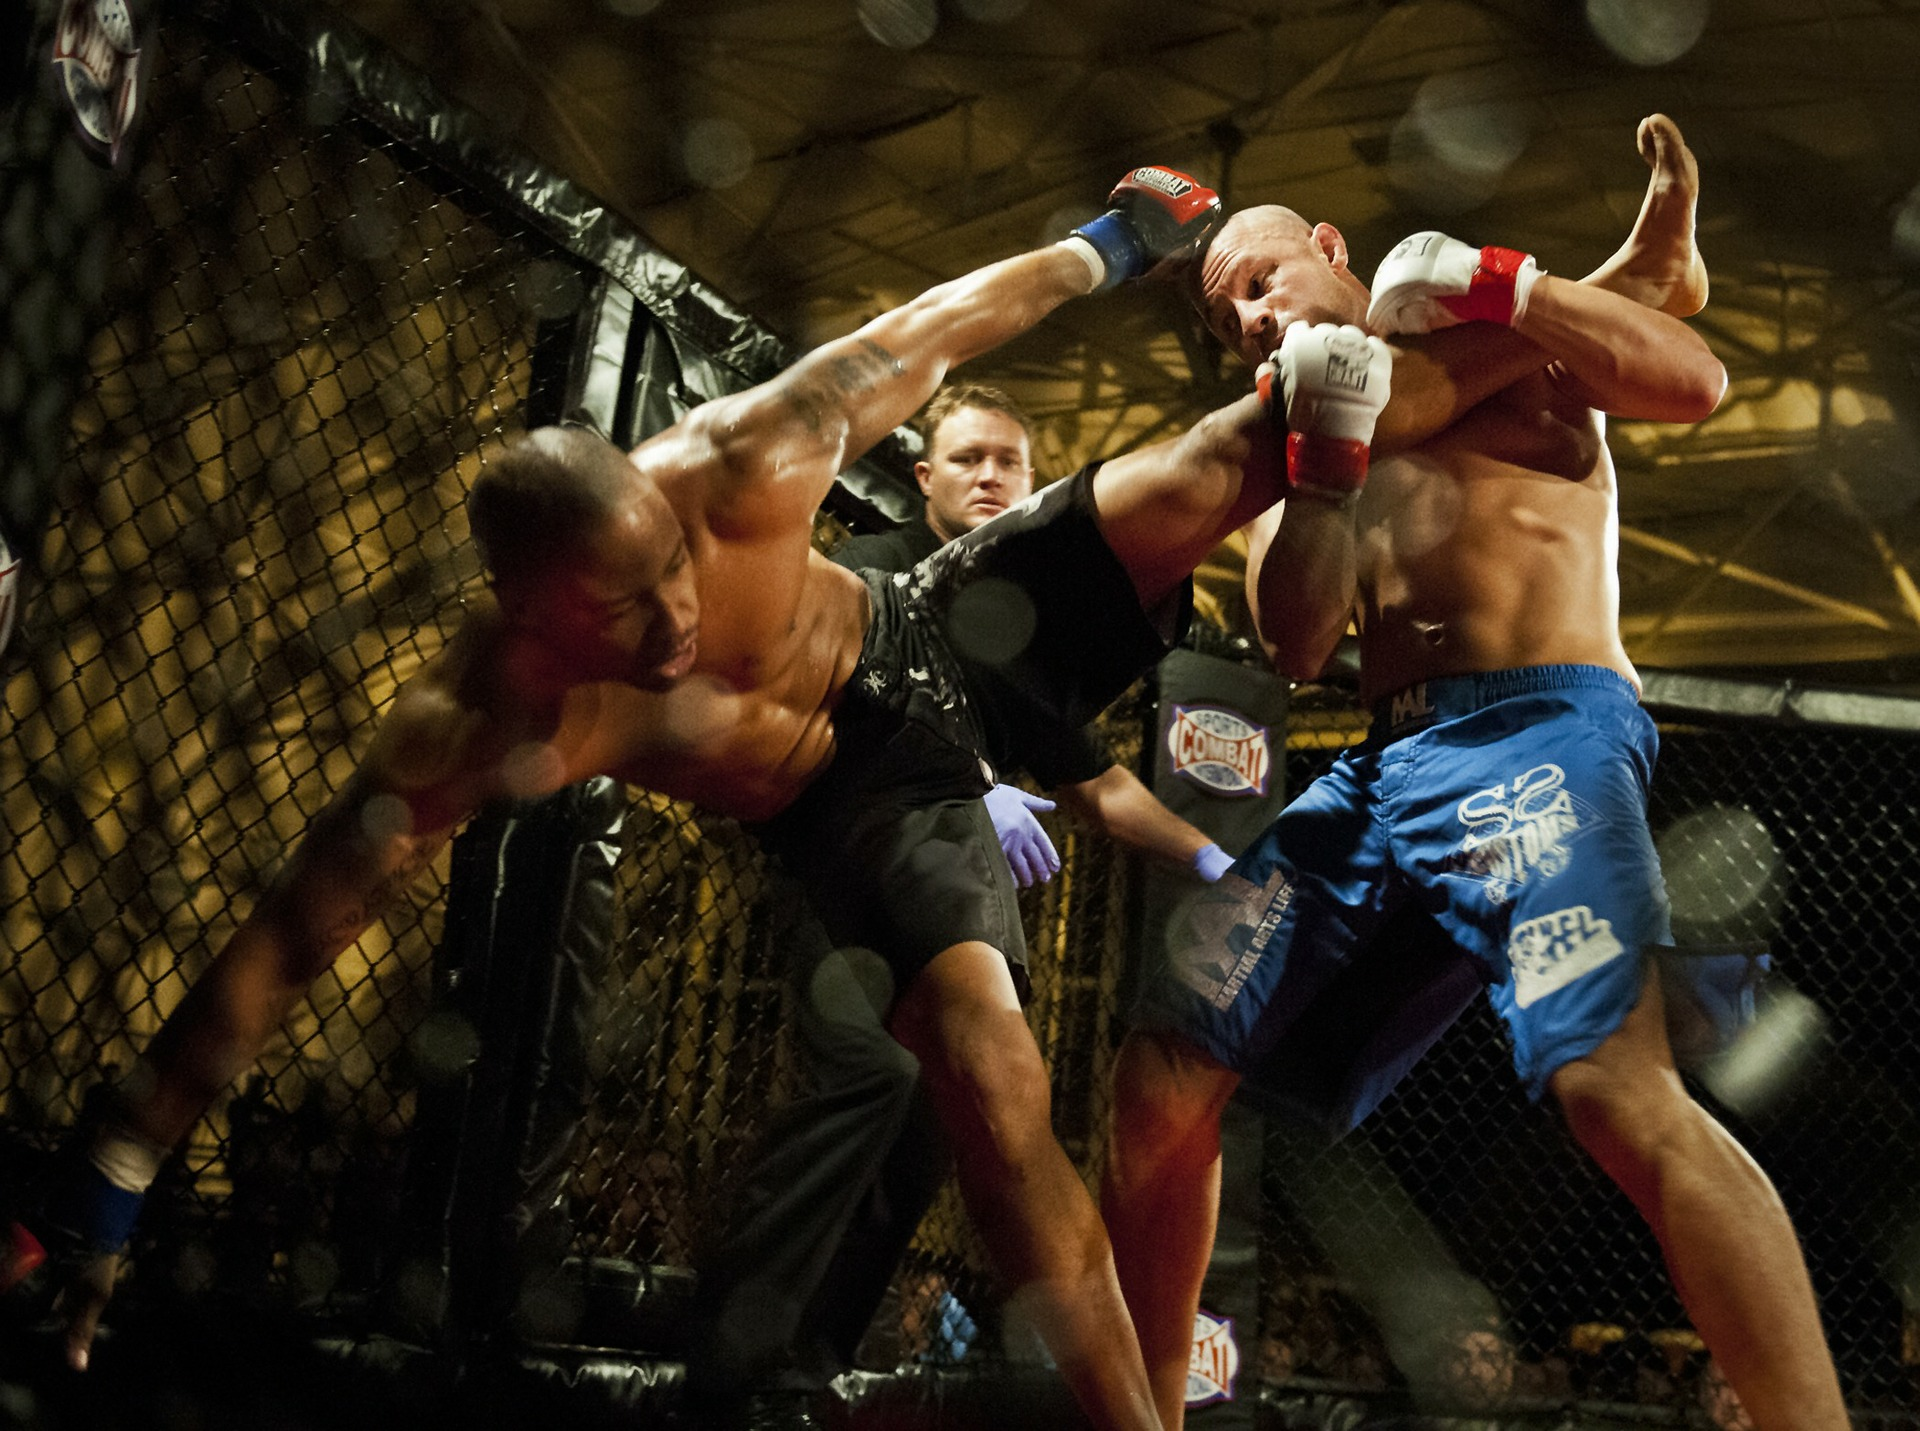 MMA or Boxing? Which is Better for Self-defense and Fitness?